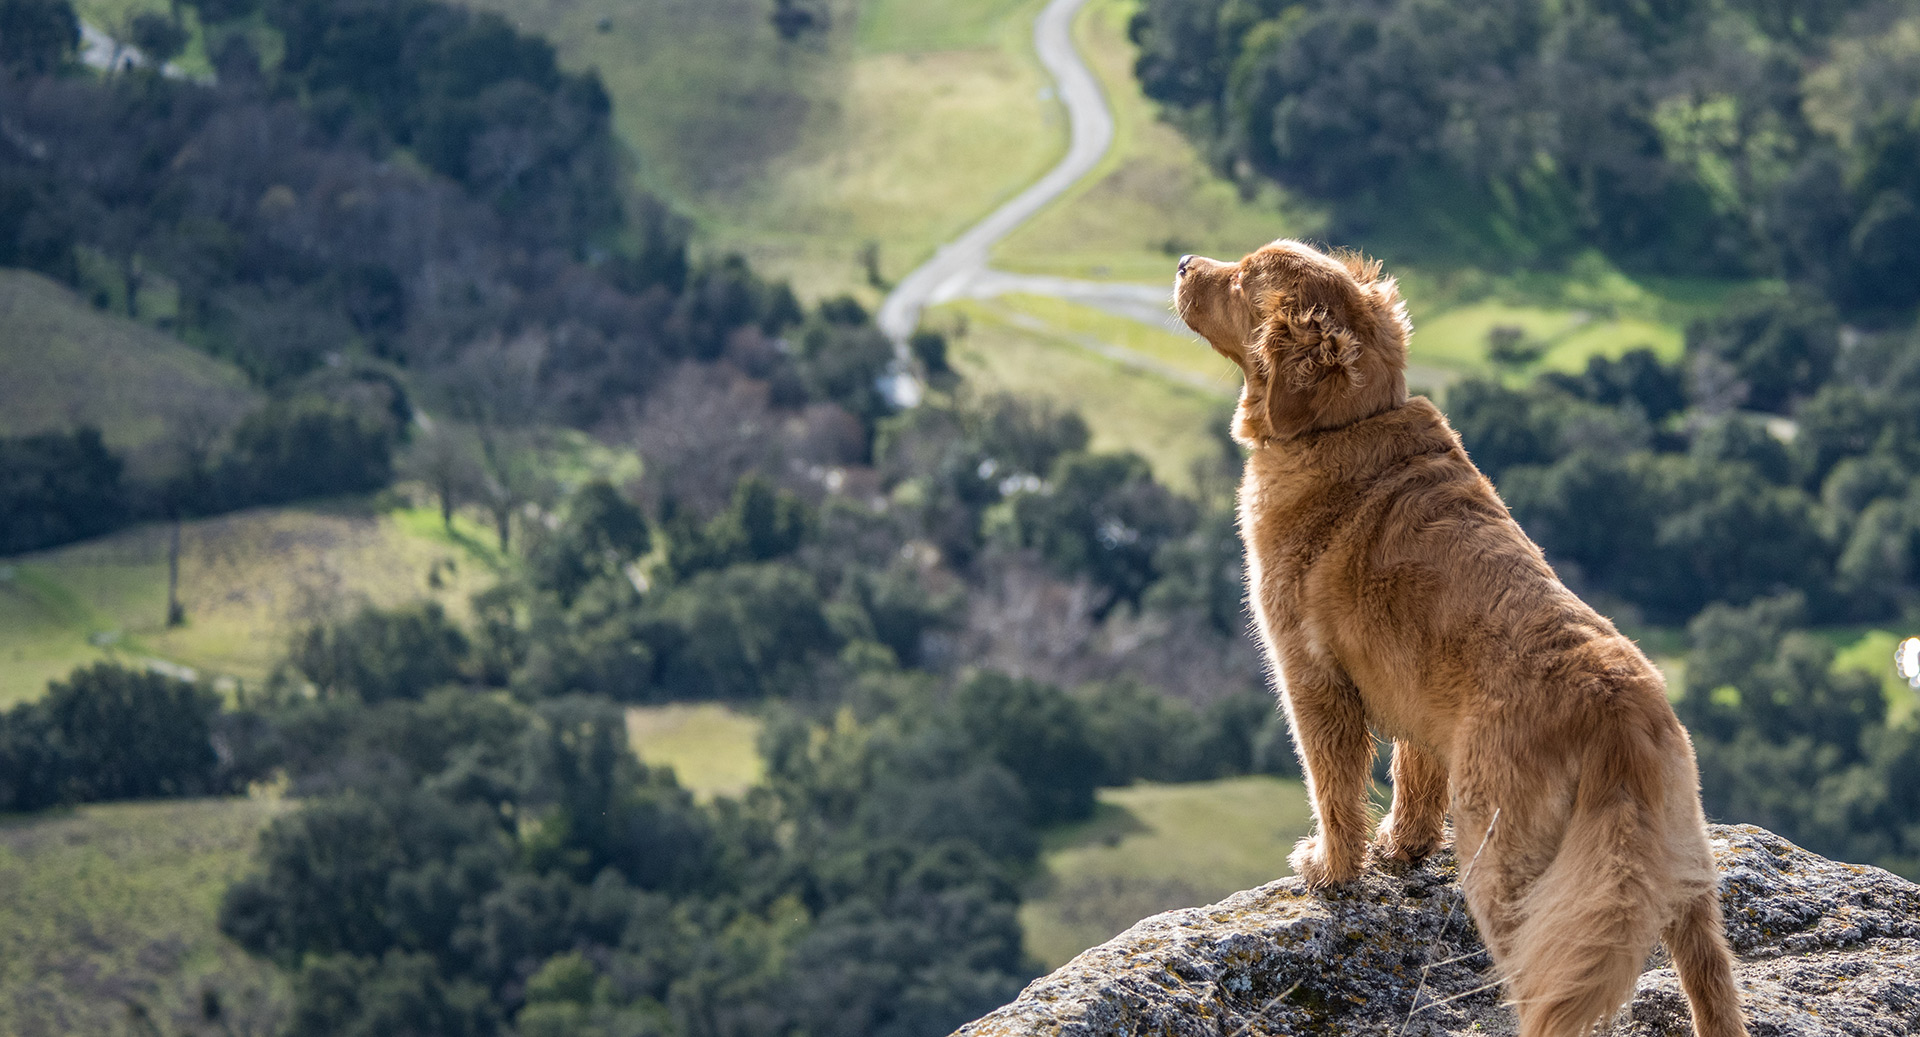 Dog-Friendly Hikes in Orange County